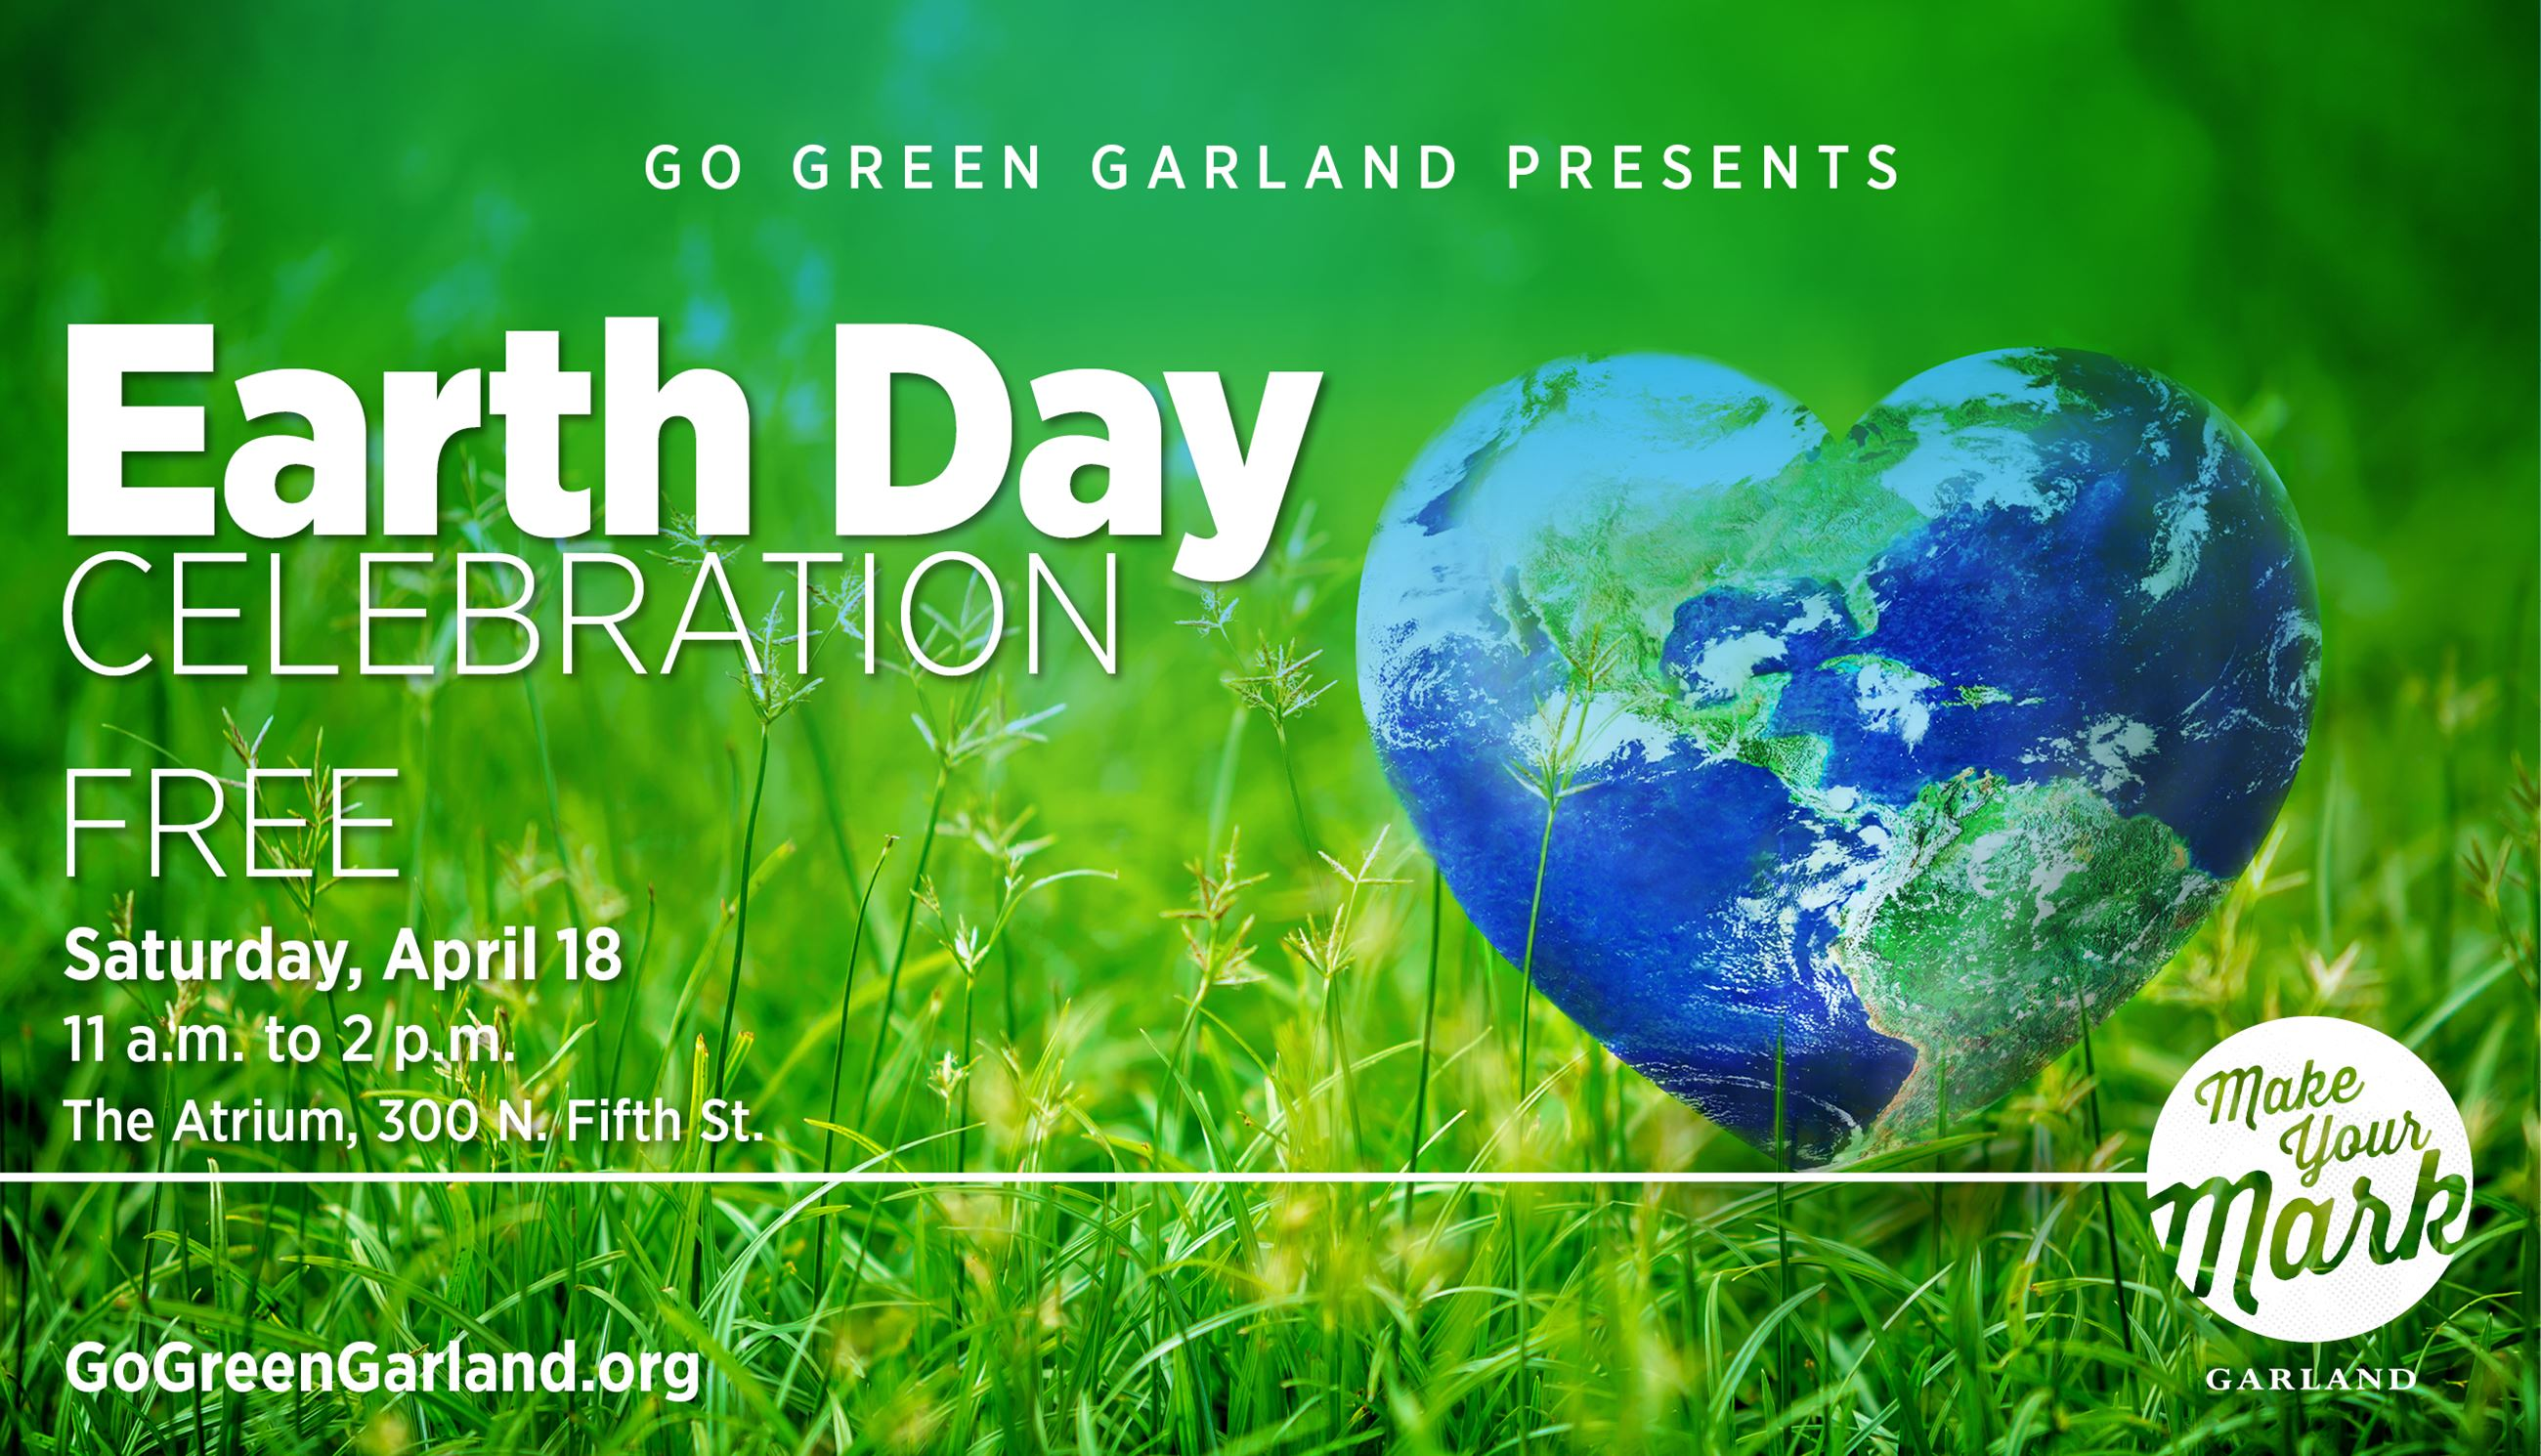 Garland&#39s Earth Day Celebration is April 18, 2020, from 11 a.m. to 2 p.m. at The Atrium